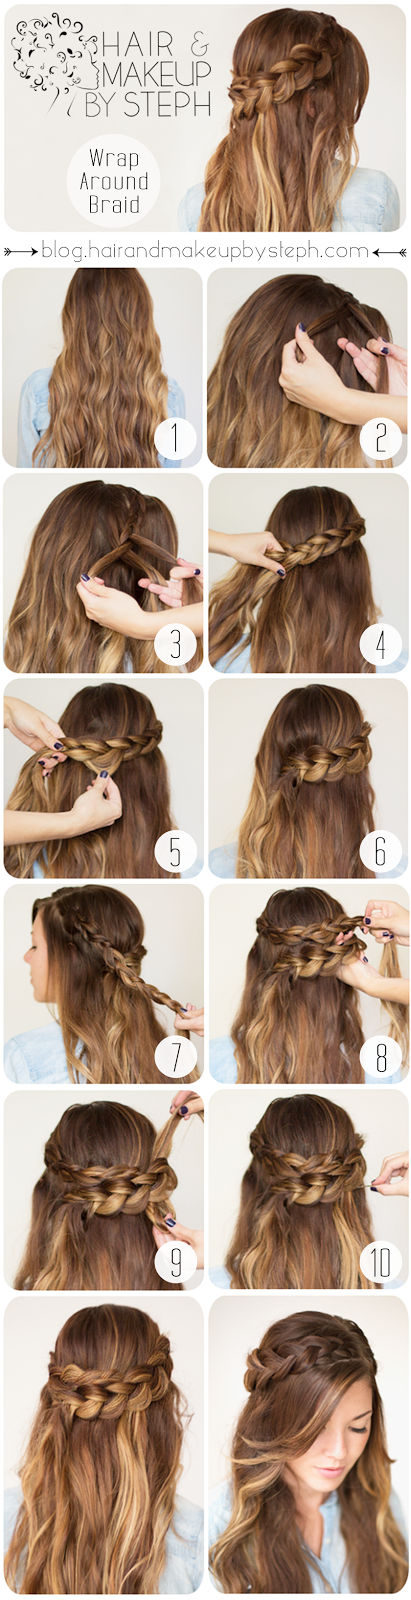 Groovy 30 Cute And Easy Braid Tutorials That Are Perfect For Any Schematic Wiring Diagrams Amerangerunnerswayorg